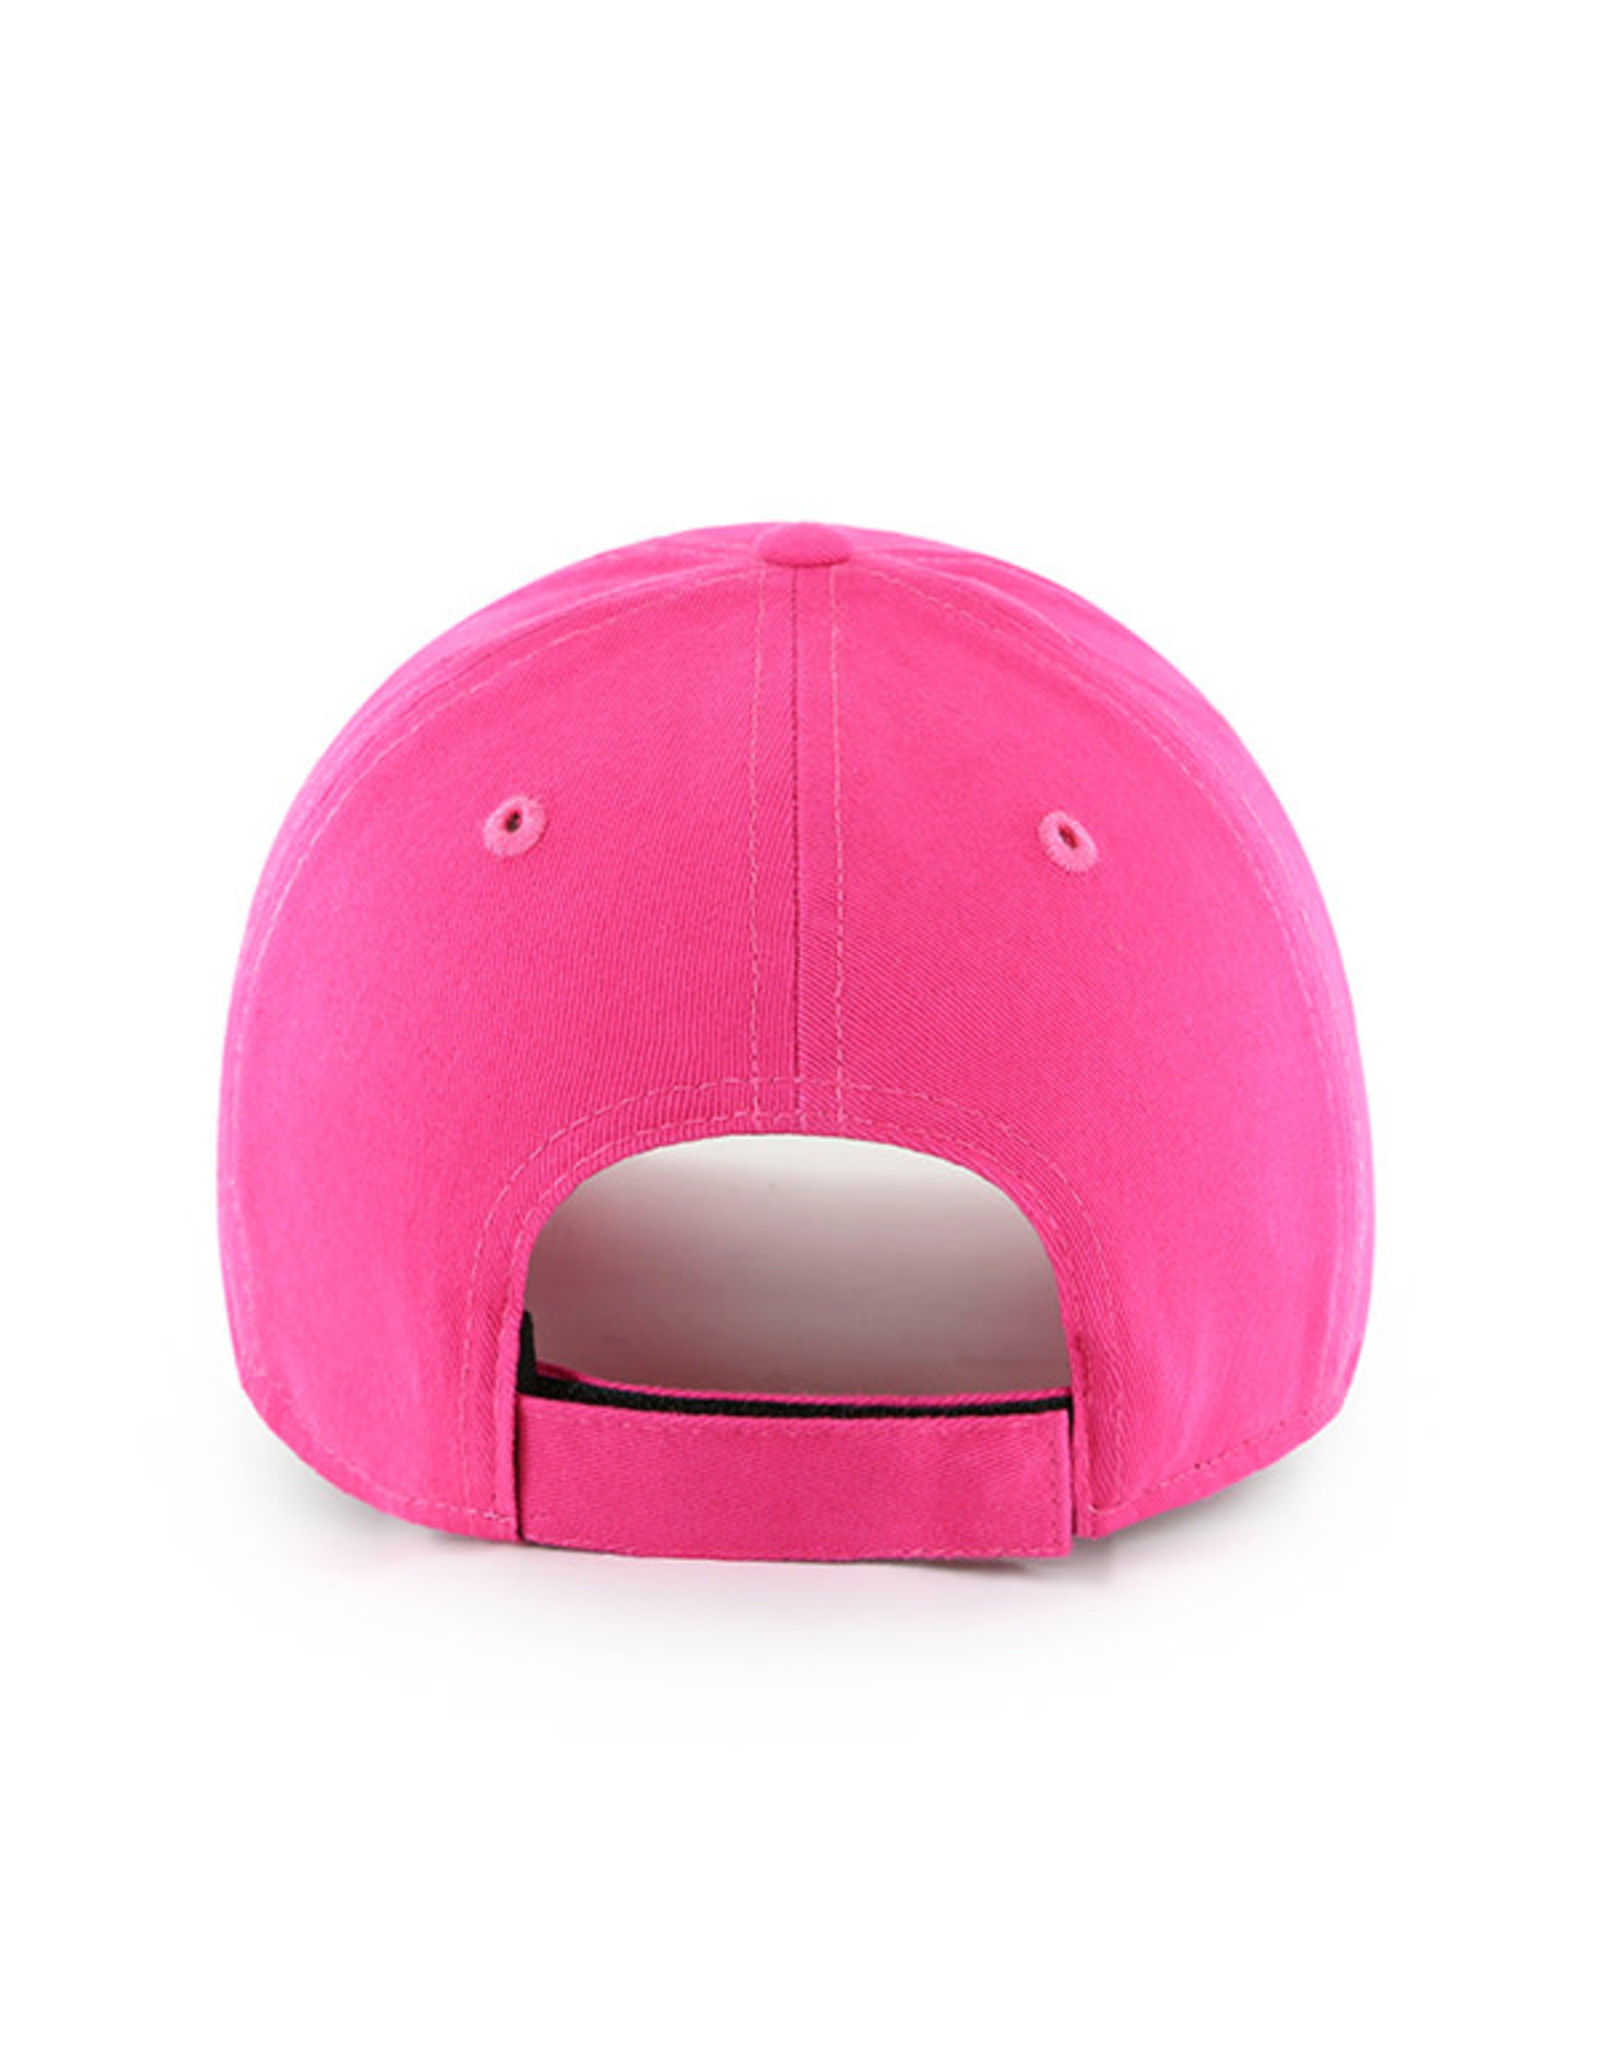 '47 Brand 1670 Girls Pink Sugar Sweet Cap